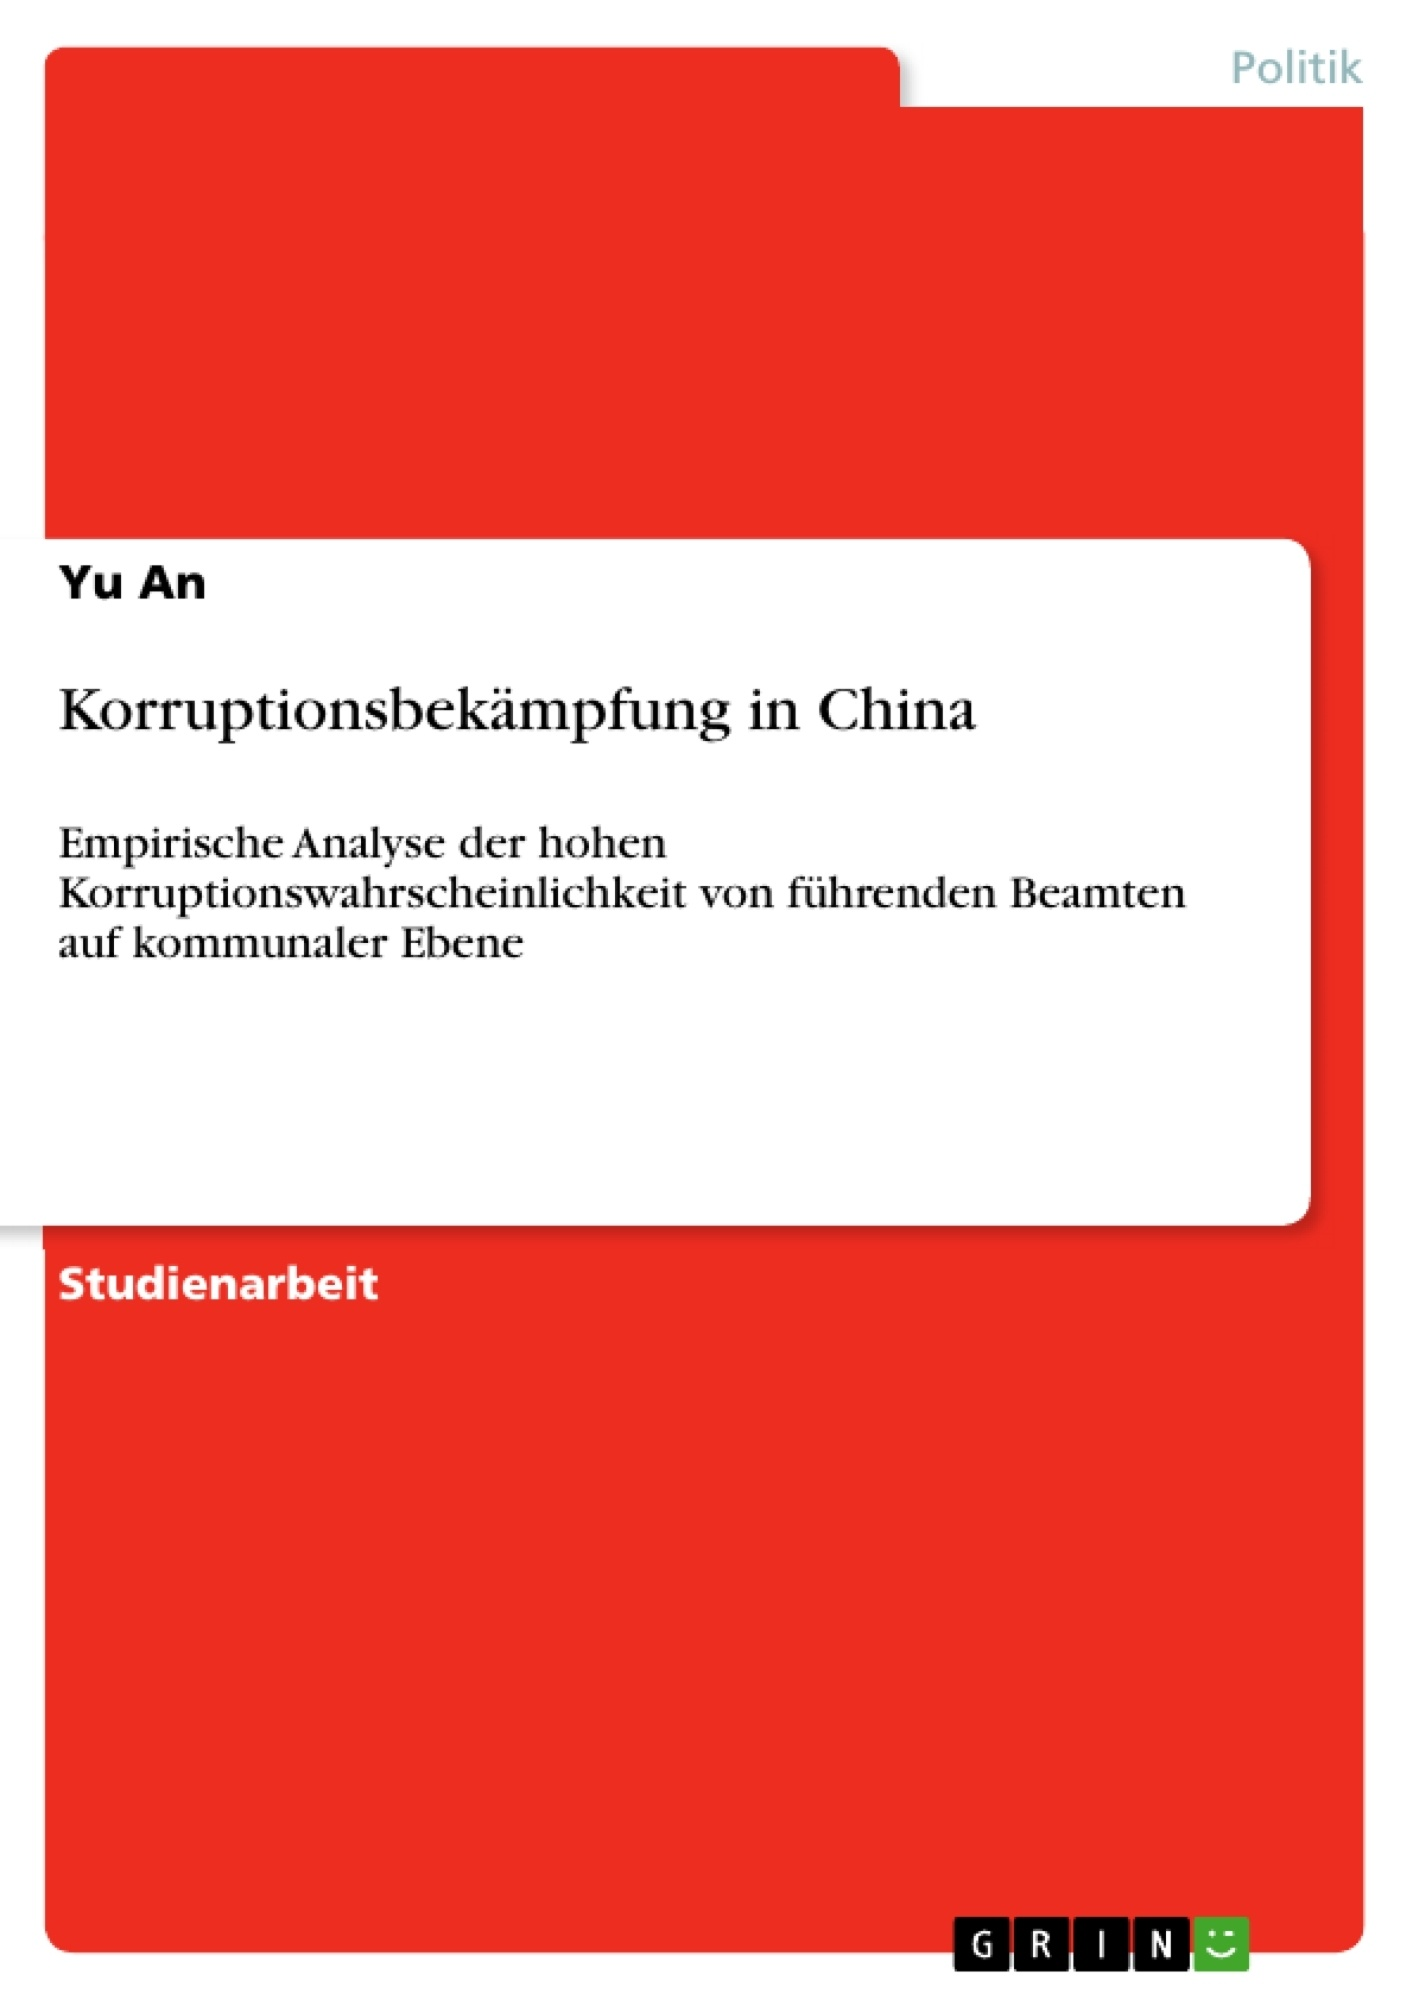 Titel: Korruptionsbekämpfung in China